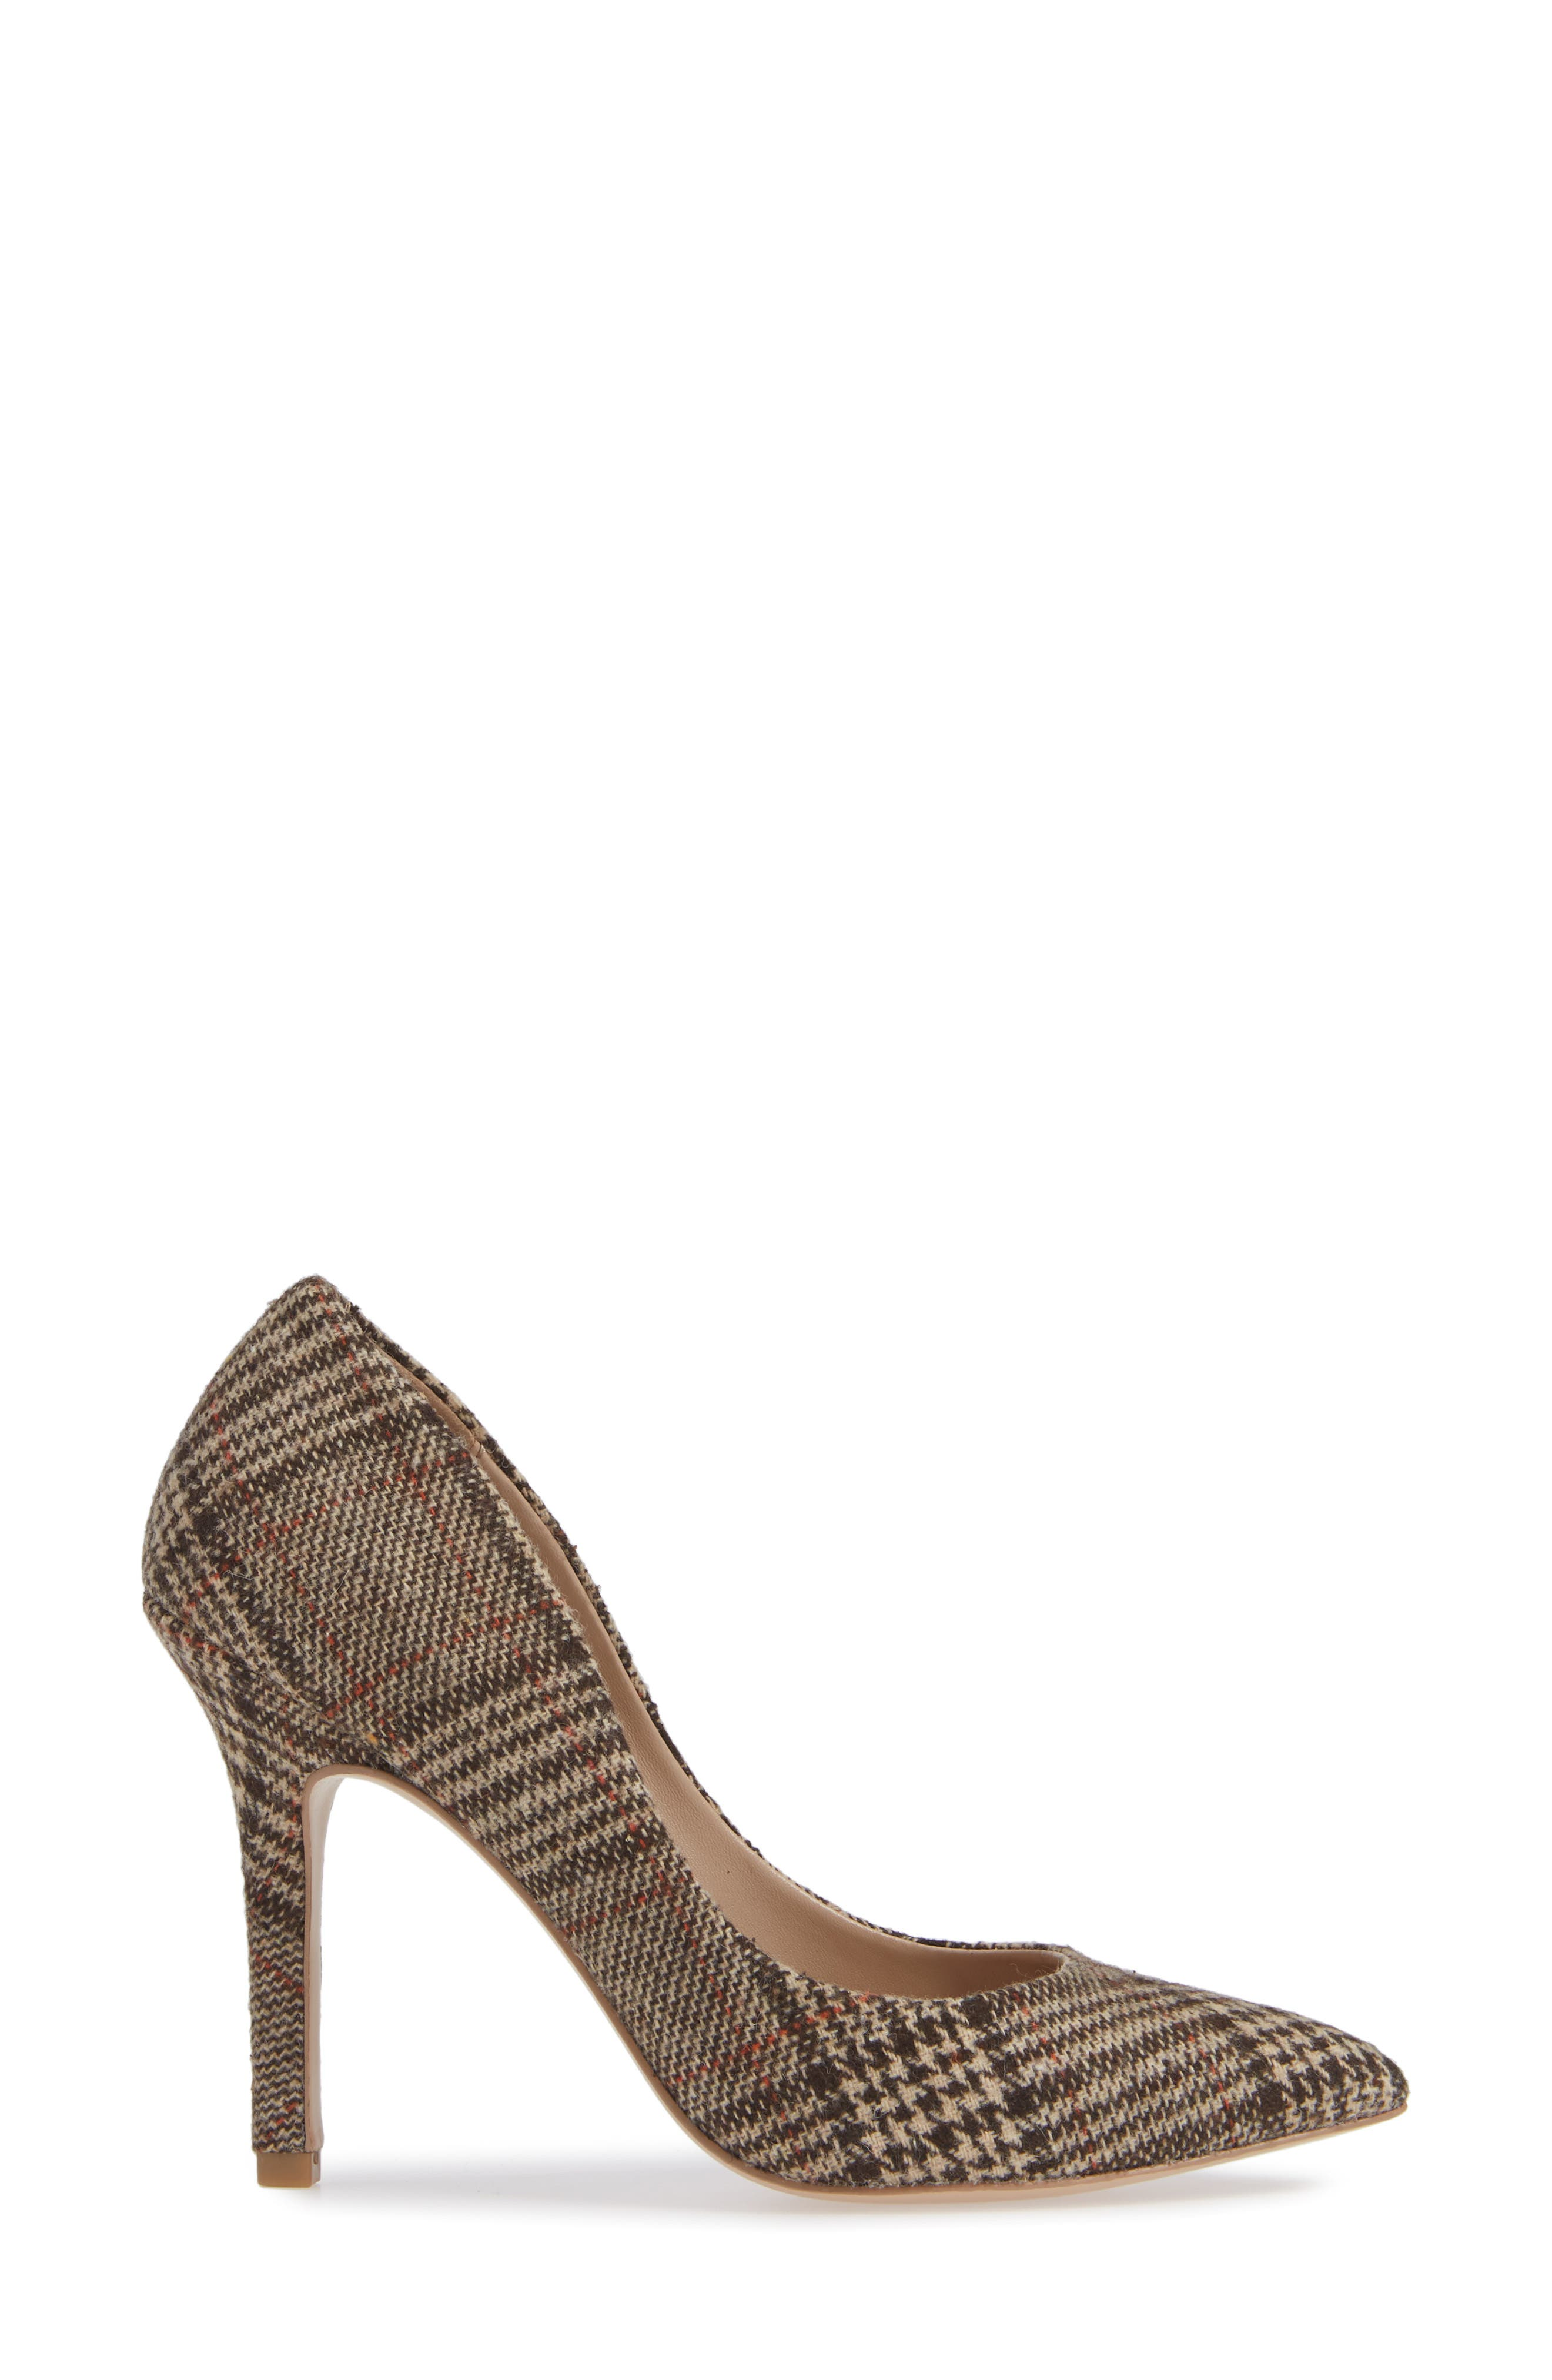 Maxx Pointy Toe Pump,                             Alternate thumbnail 3, color,                             BROWN PLAID FABRIC